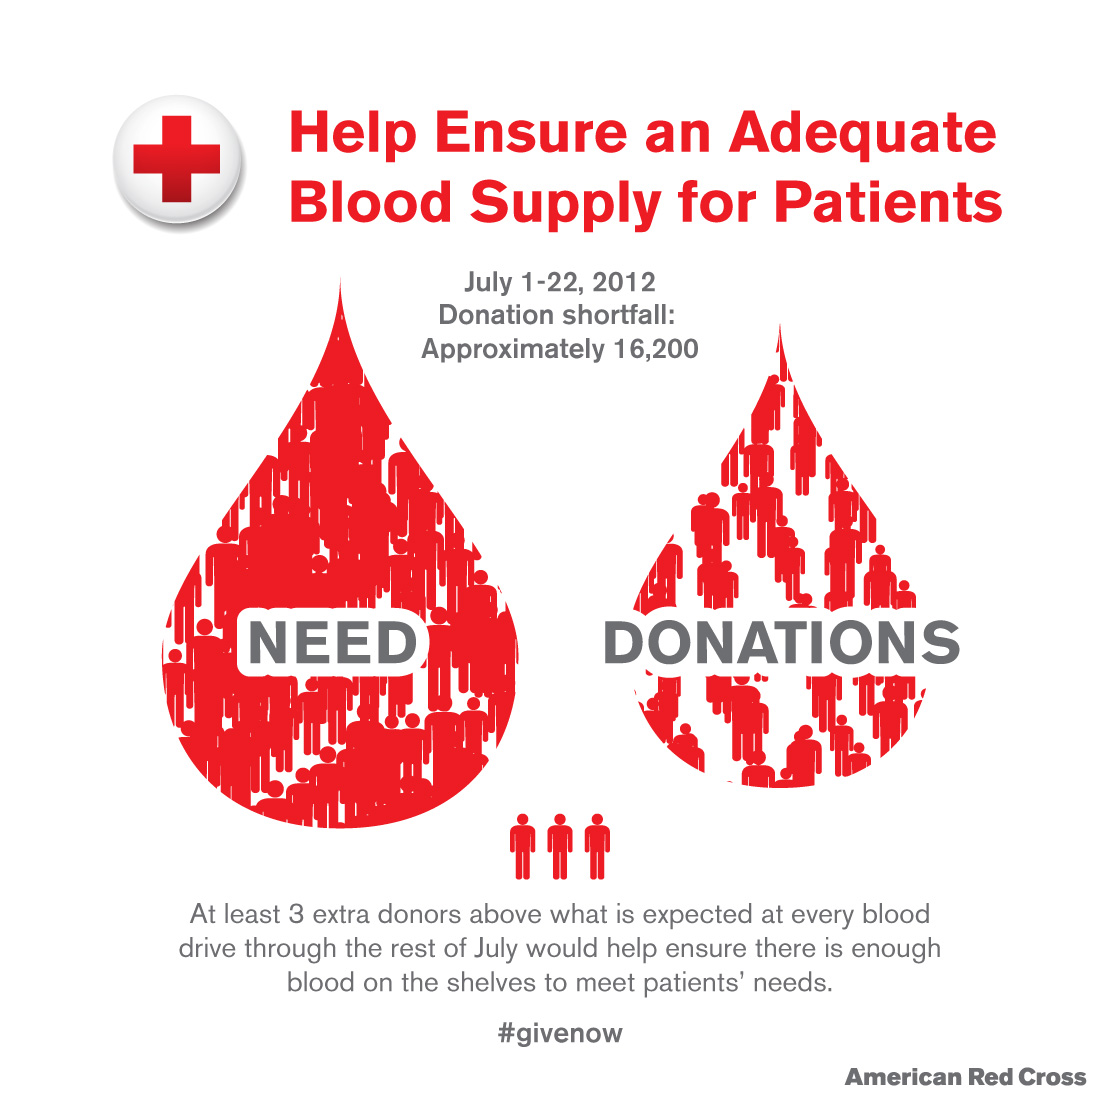 donate blood essay Screening measures help to maximize safety of blood donation for the donor and the recipient from that blood donations are very important part of our healthcare system.